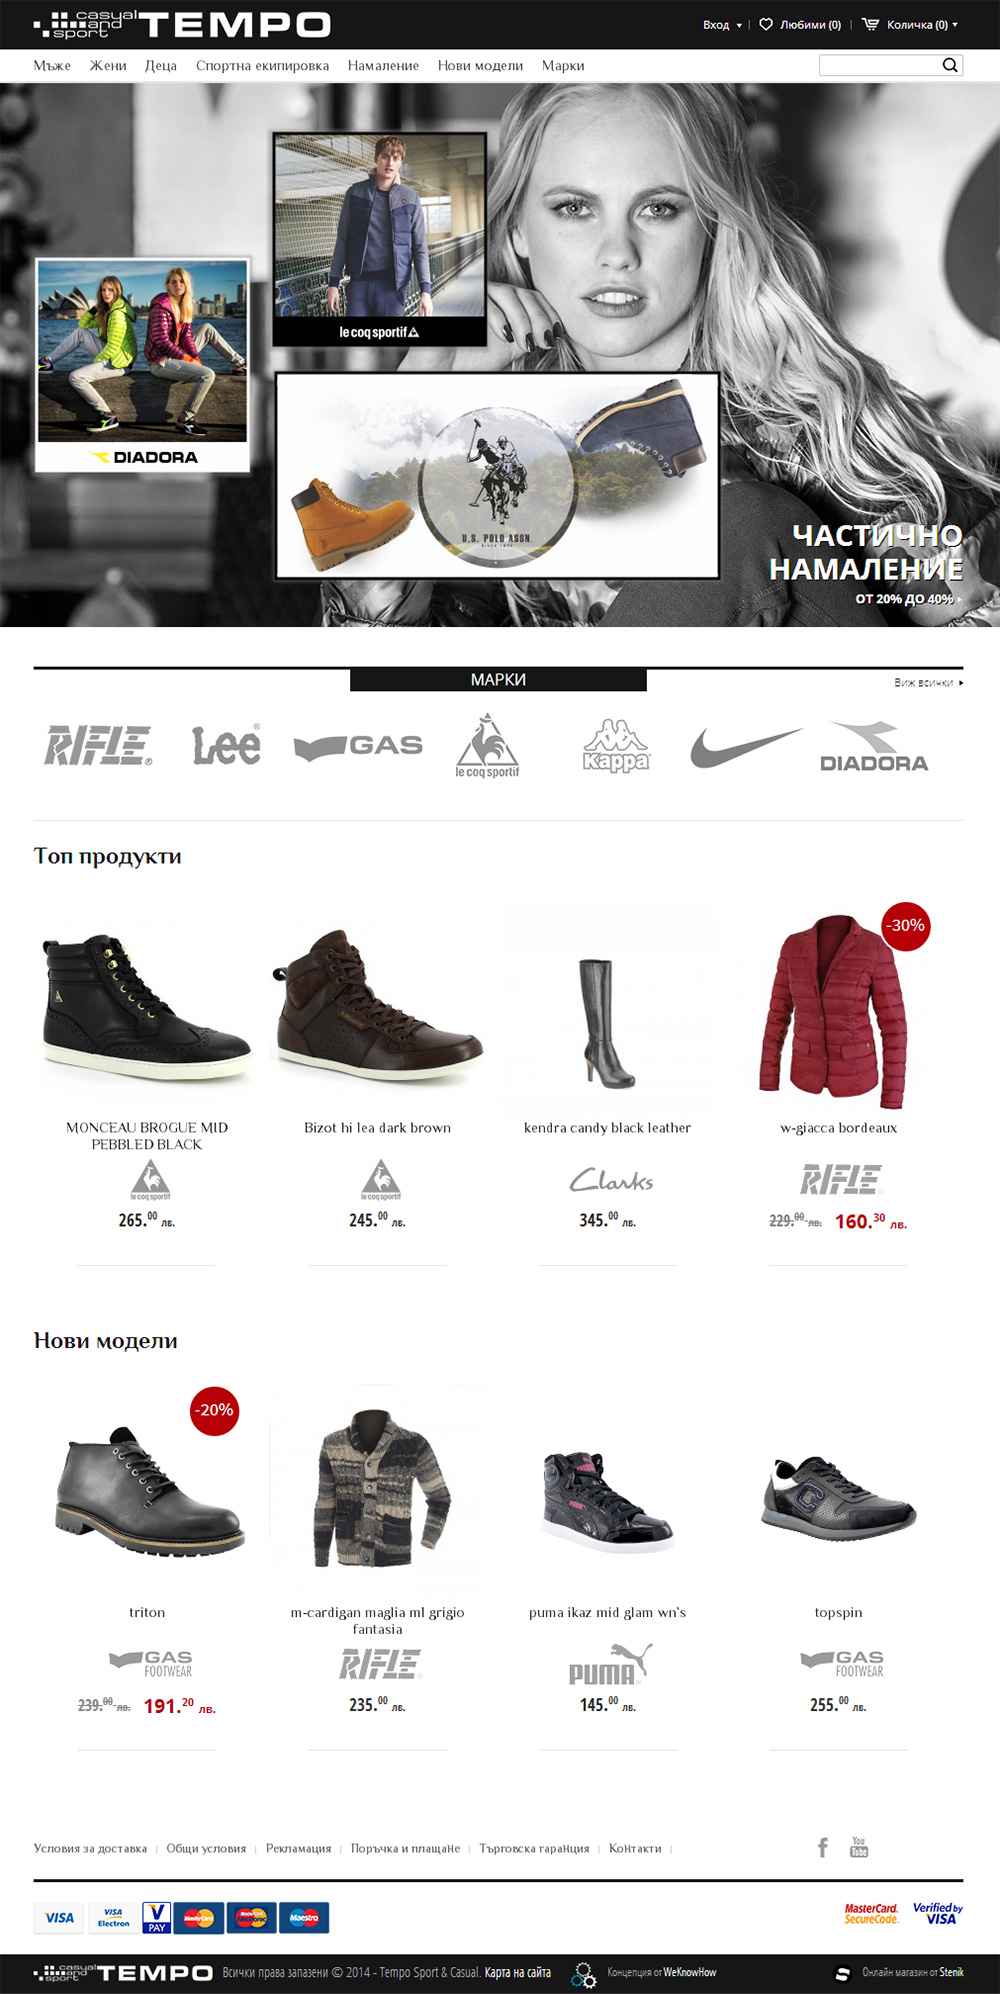 Online store for TEMPO Sport & Casual, TEMPO Sport & Casual - Online Shops, Stenik, Magento